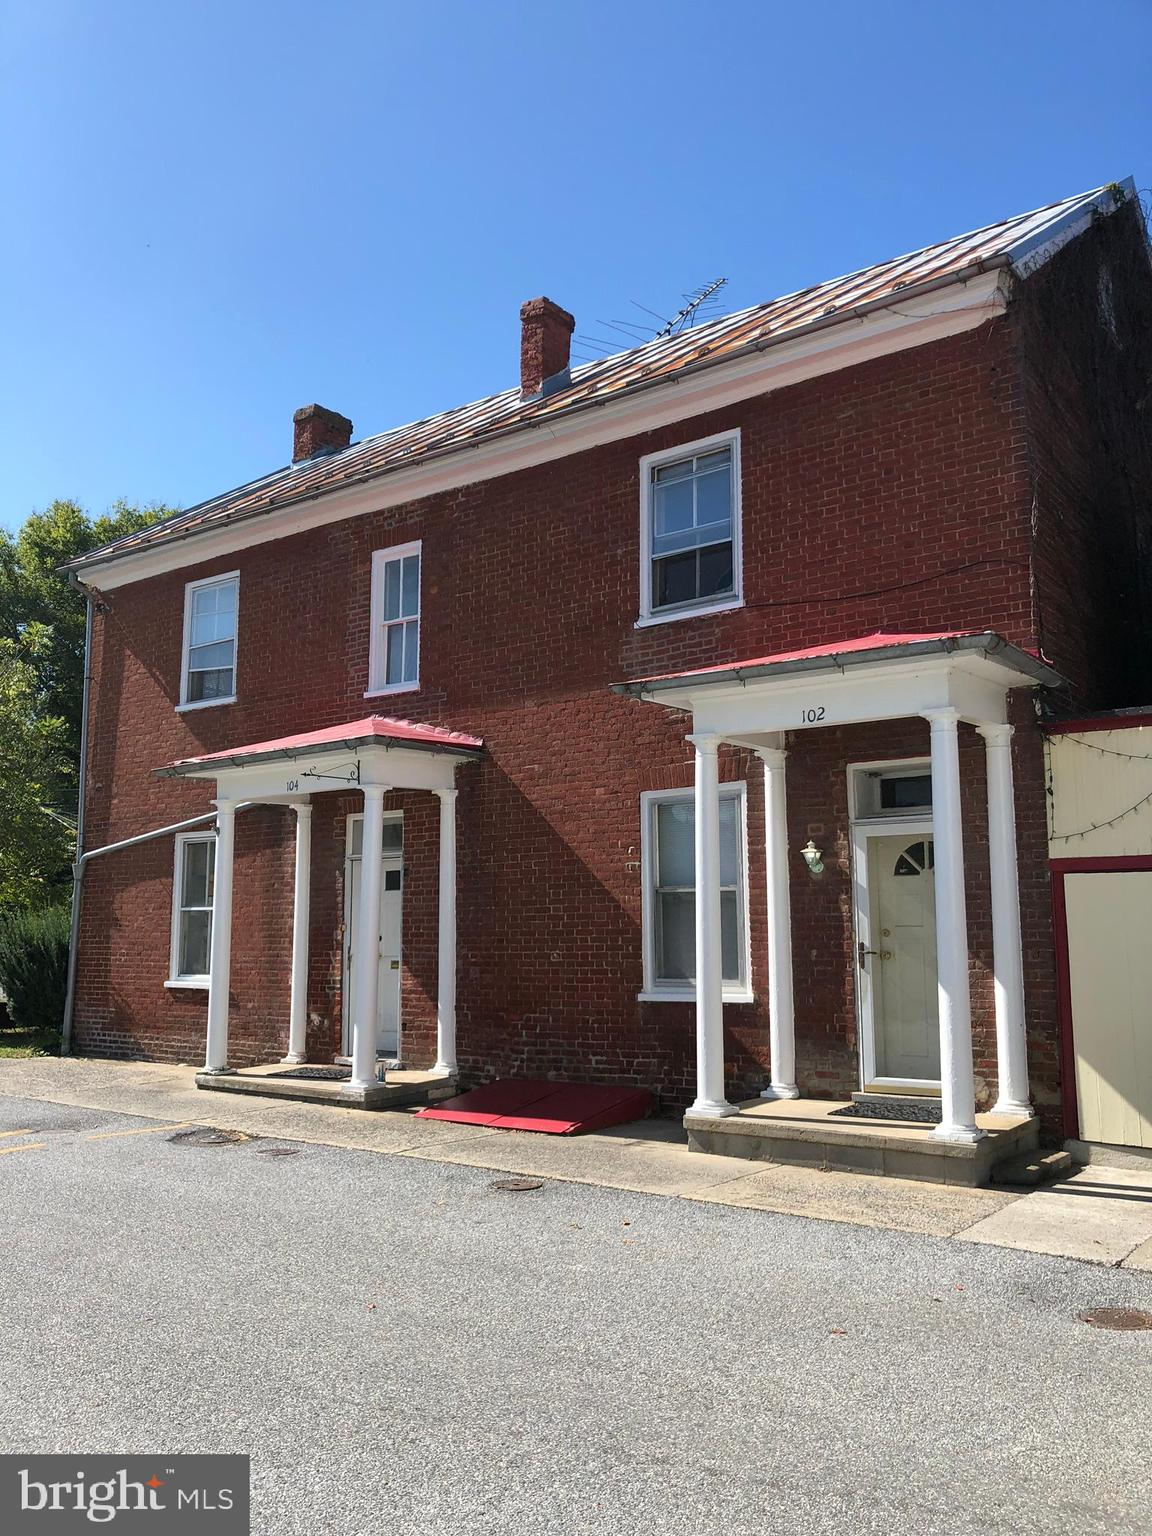 4 Unit Studio Apartment Building in the center of Shepherdstown. Live in one and rent the other unit